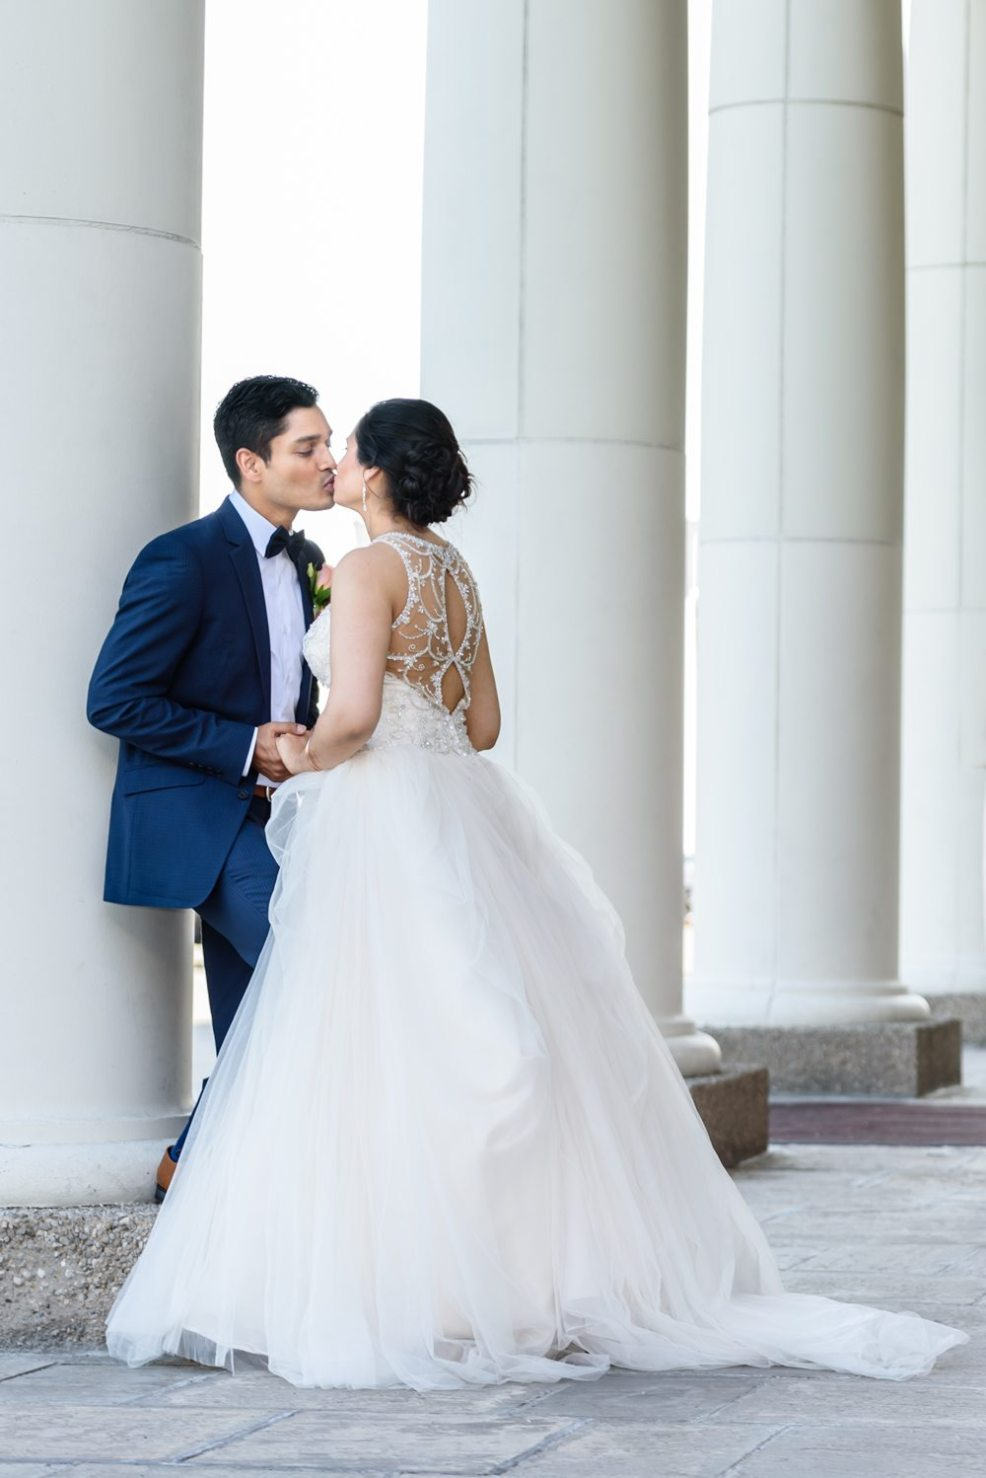 realty wedding story} Grand Affair at Mississauga Convention Centre ...